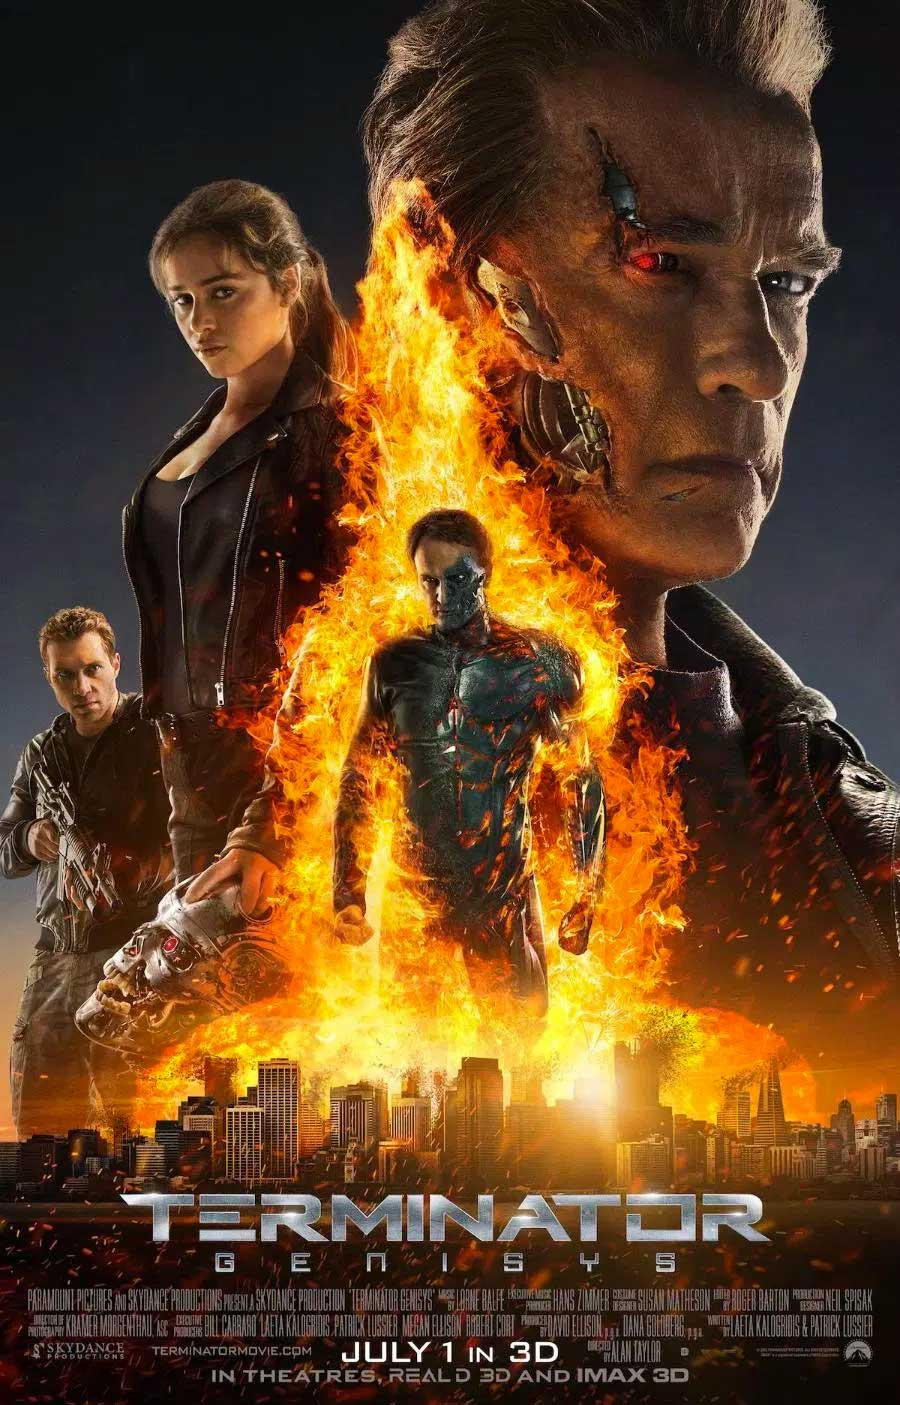 Poster for Terminator Genisys